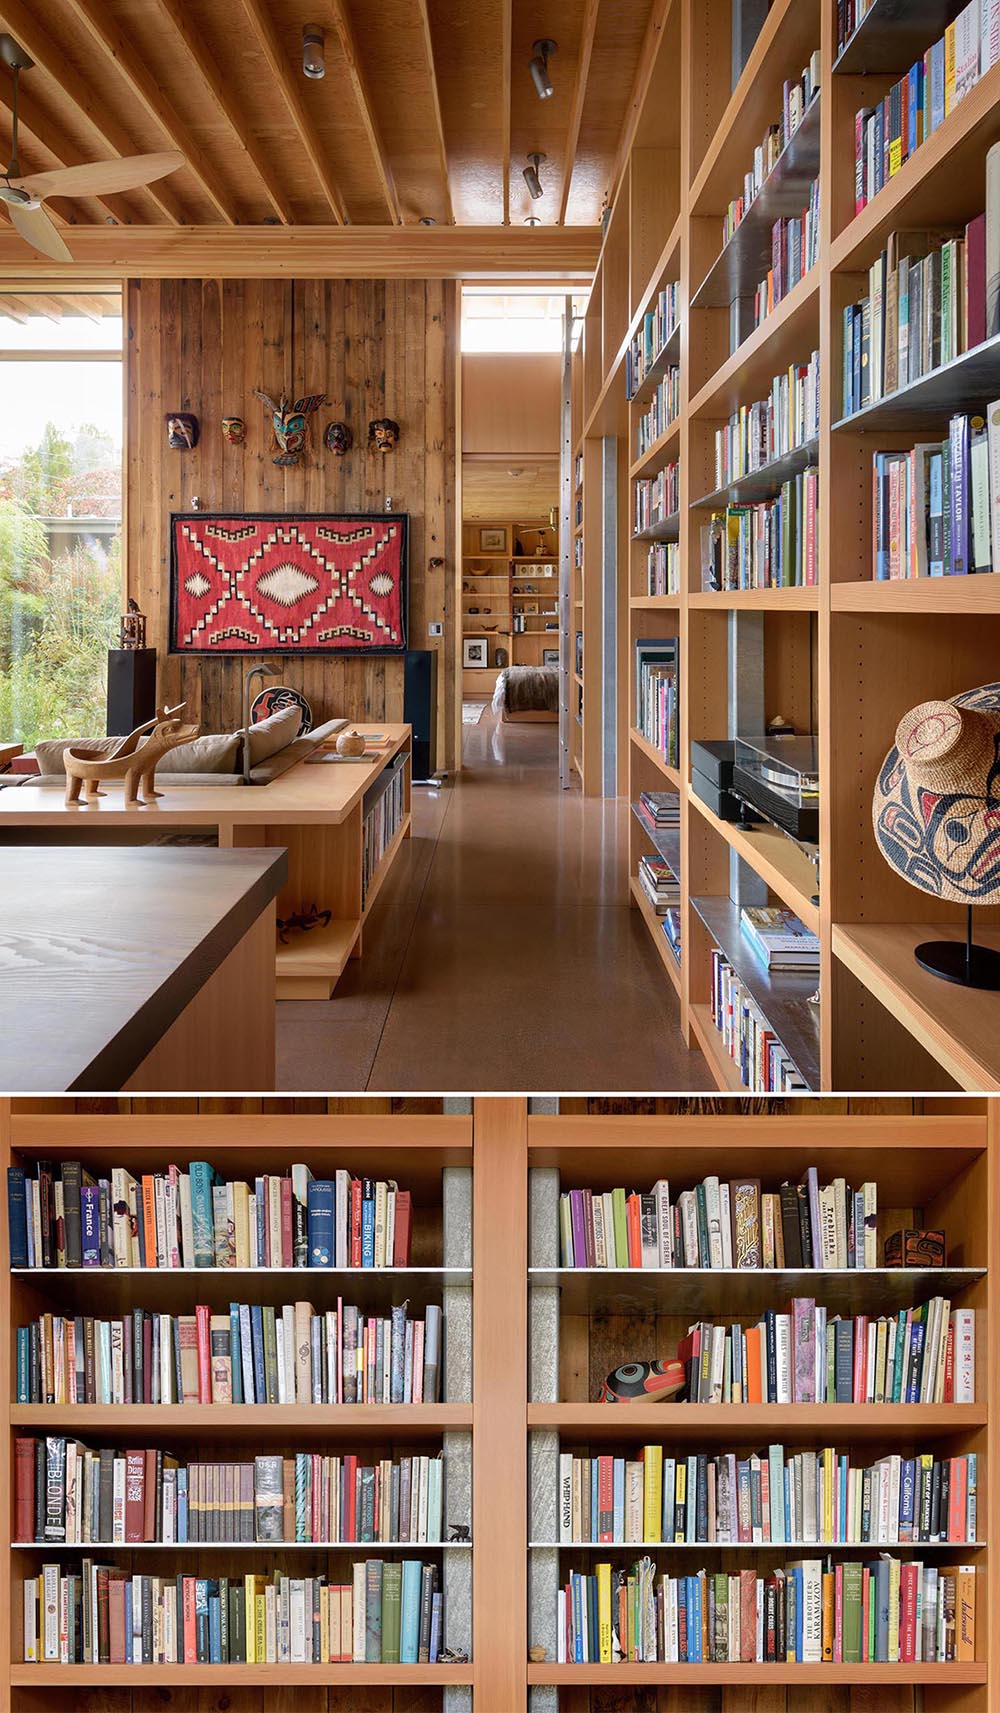 A cabin with floor-to-ceiling bookshelves.